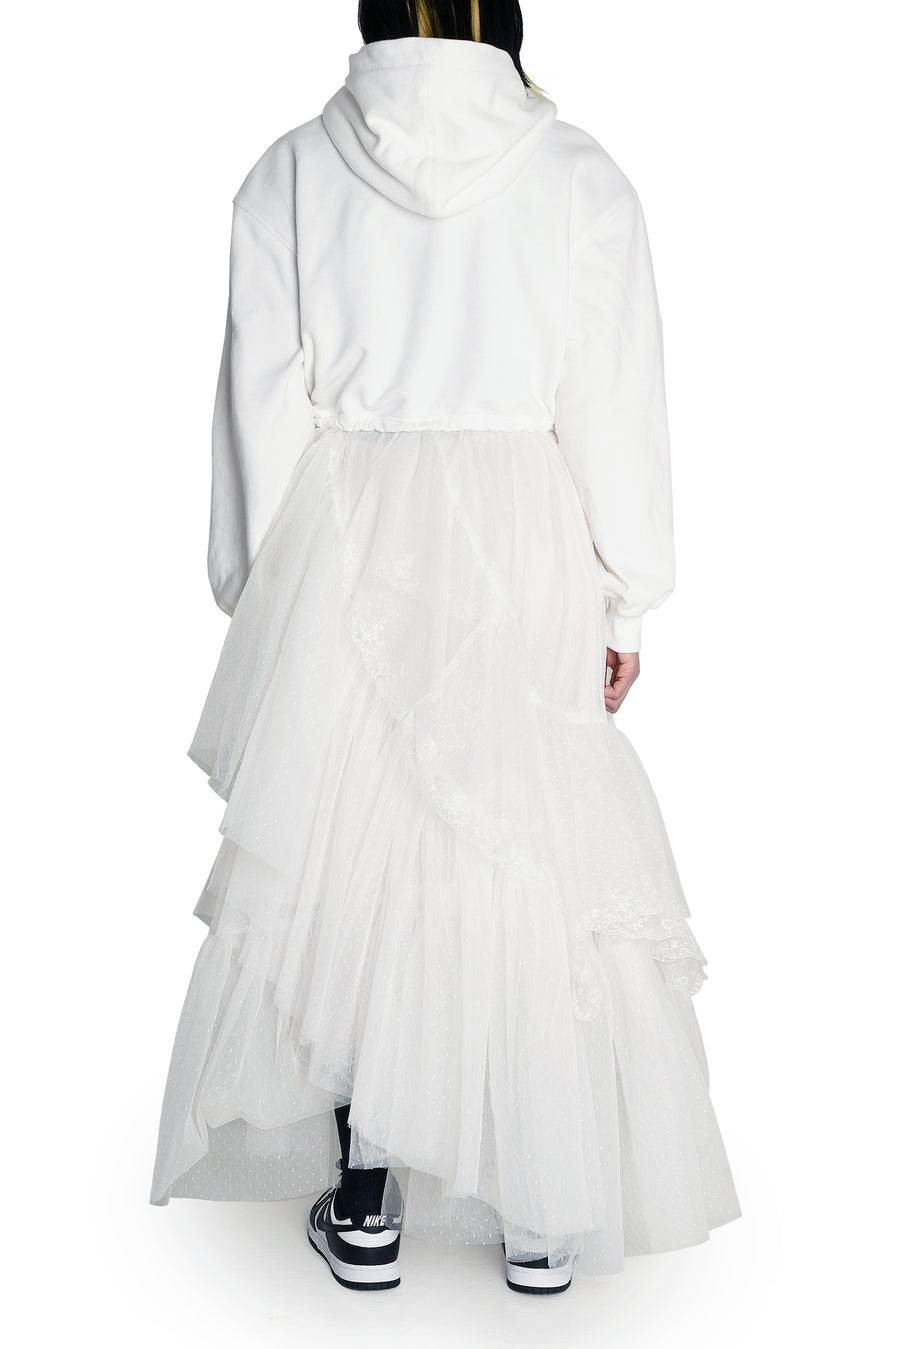 White Haute Couture Birthday Sweatdress